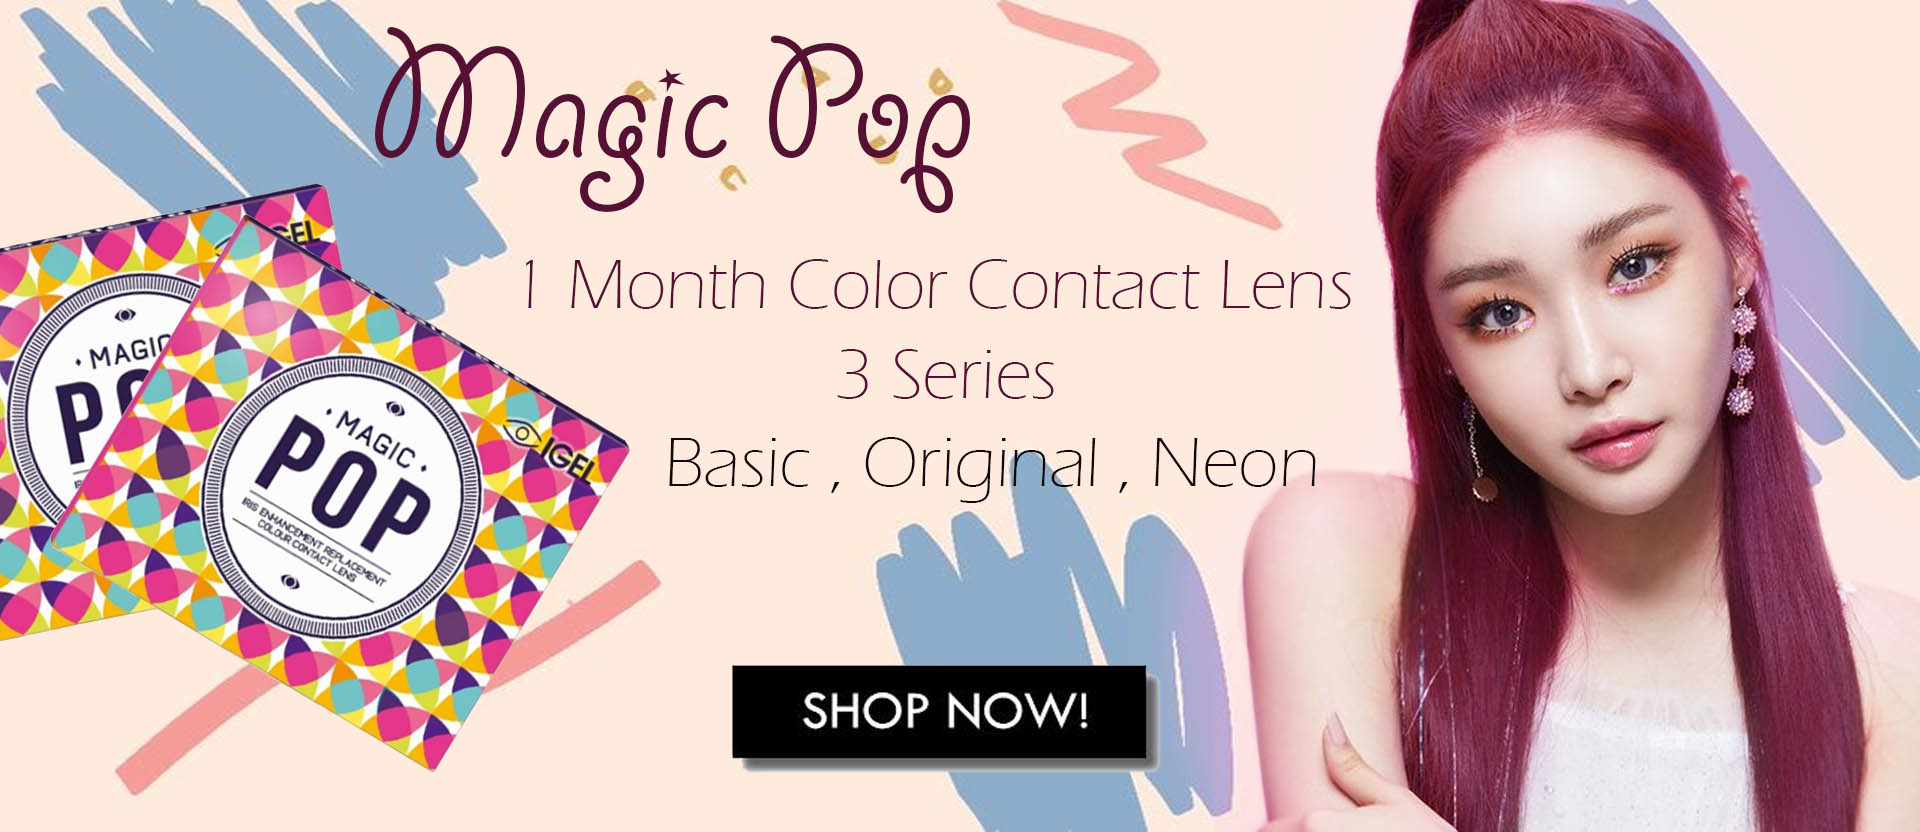 Magic pop Colour contact  lens monthly korea lens